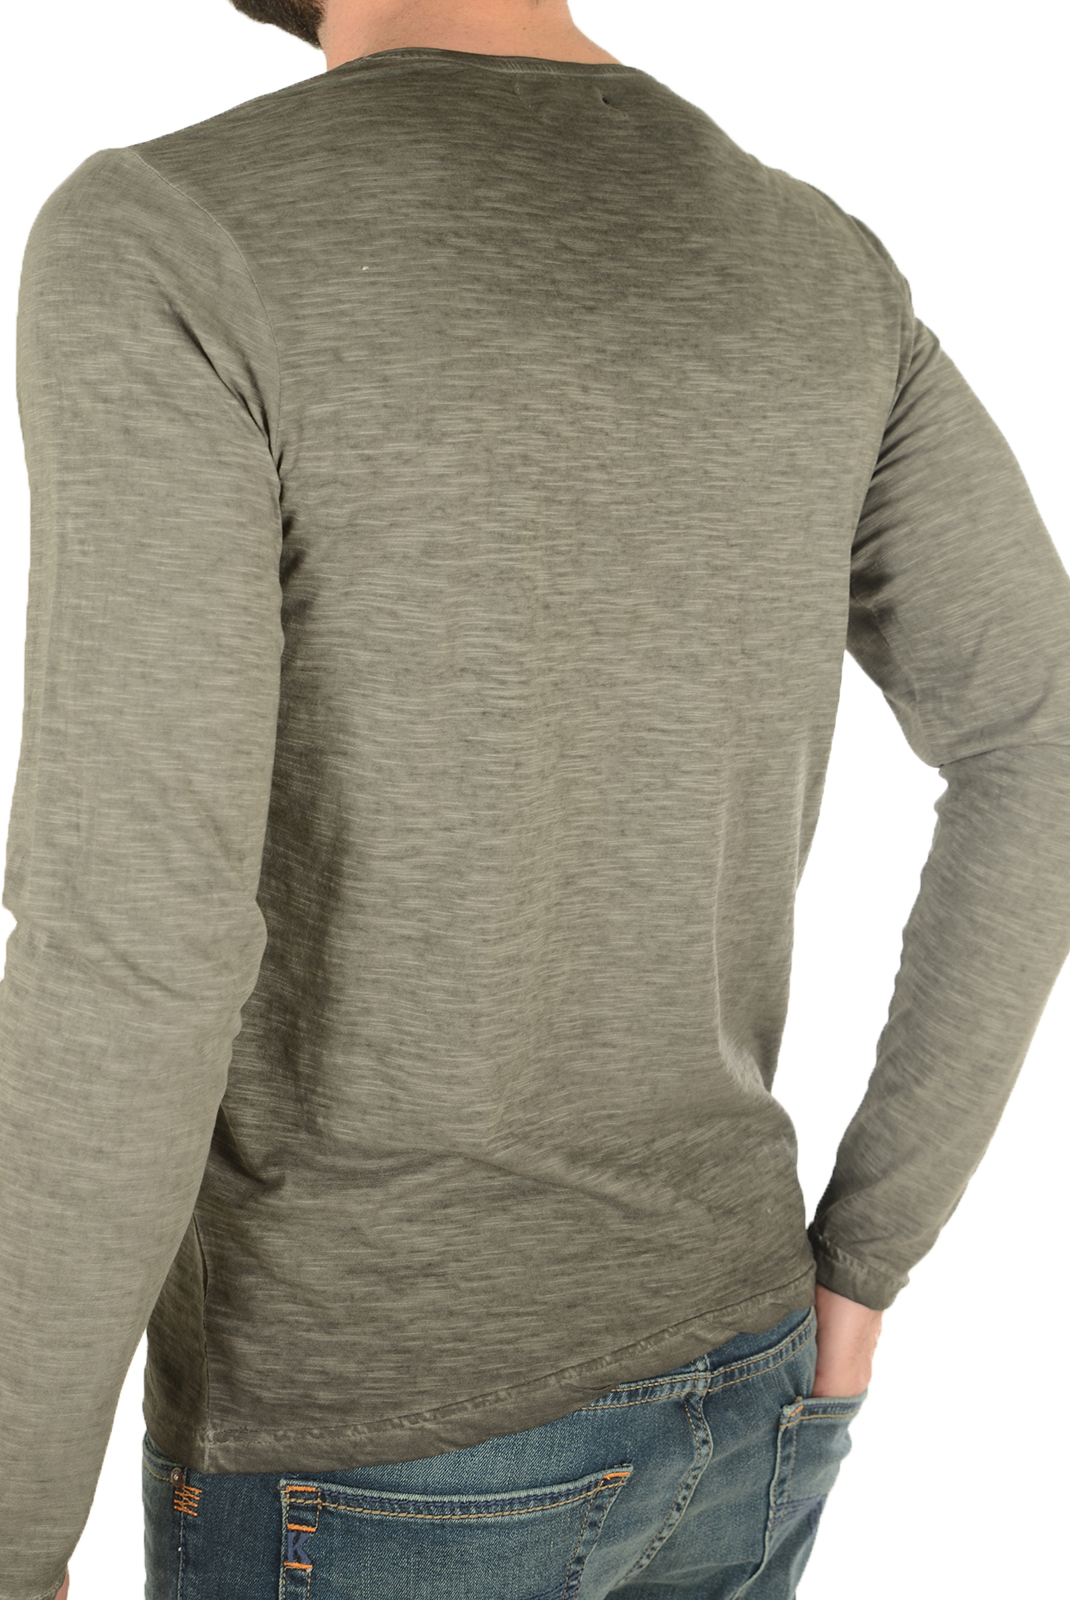 T-S manches longues  Biaggio jeans LEPALIL DK GREY